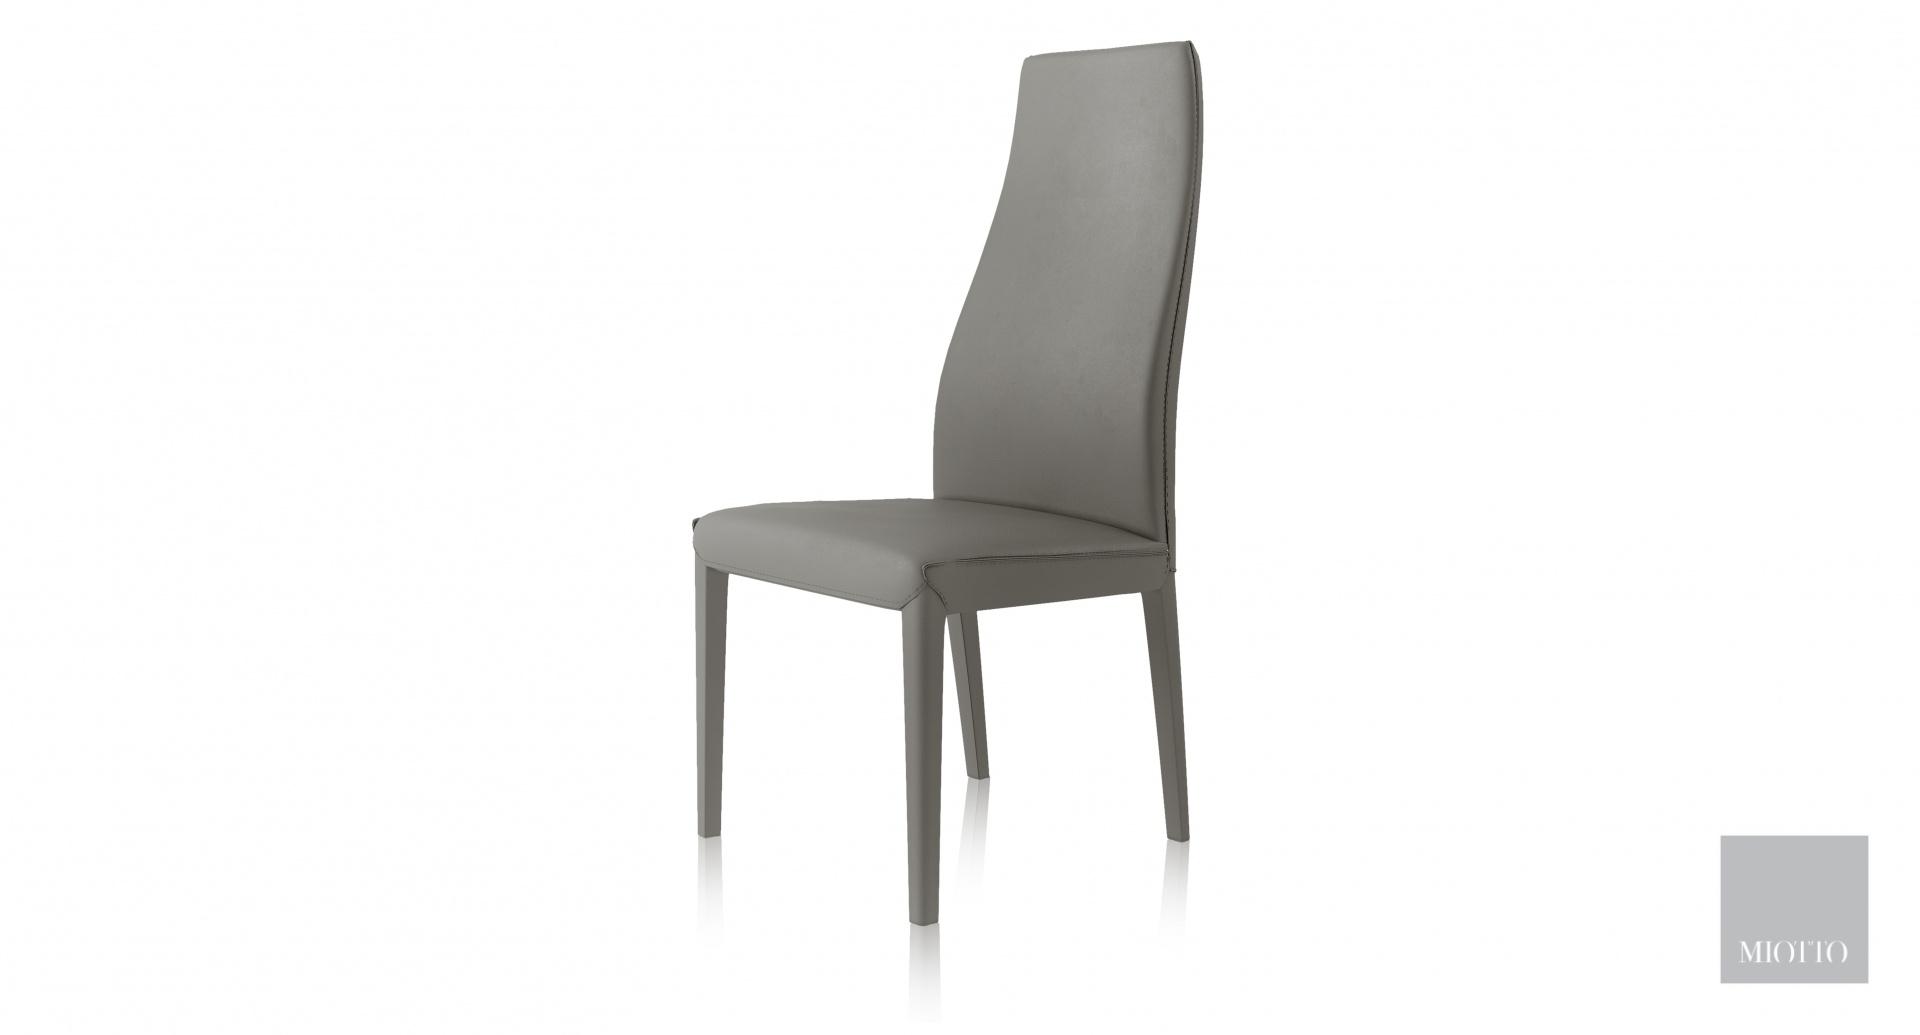 miotto_quinto DC grey T miotto dining chair furniture